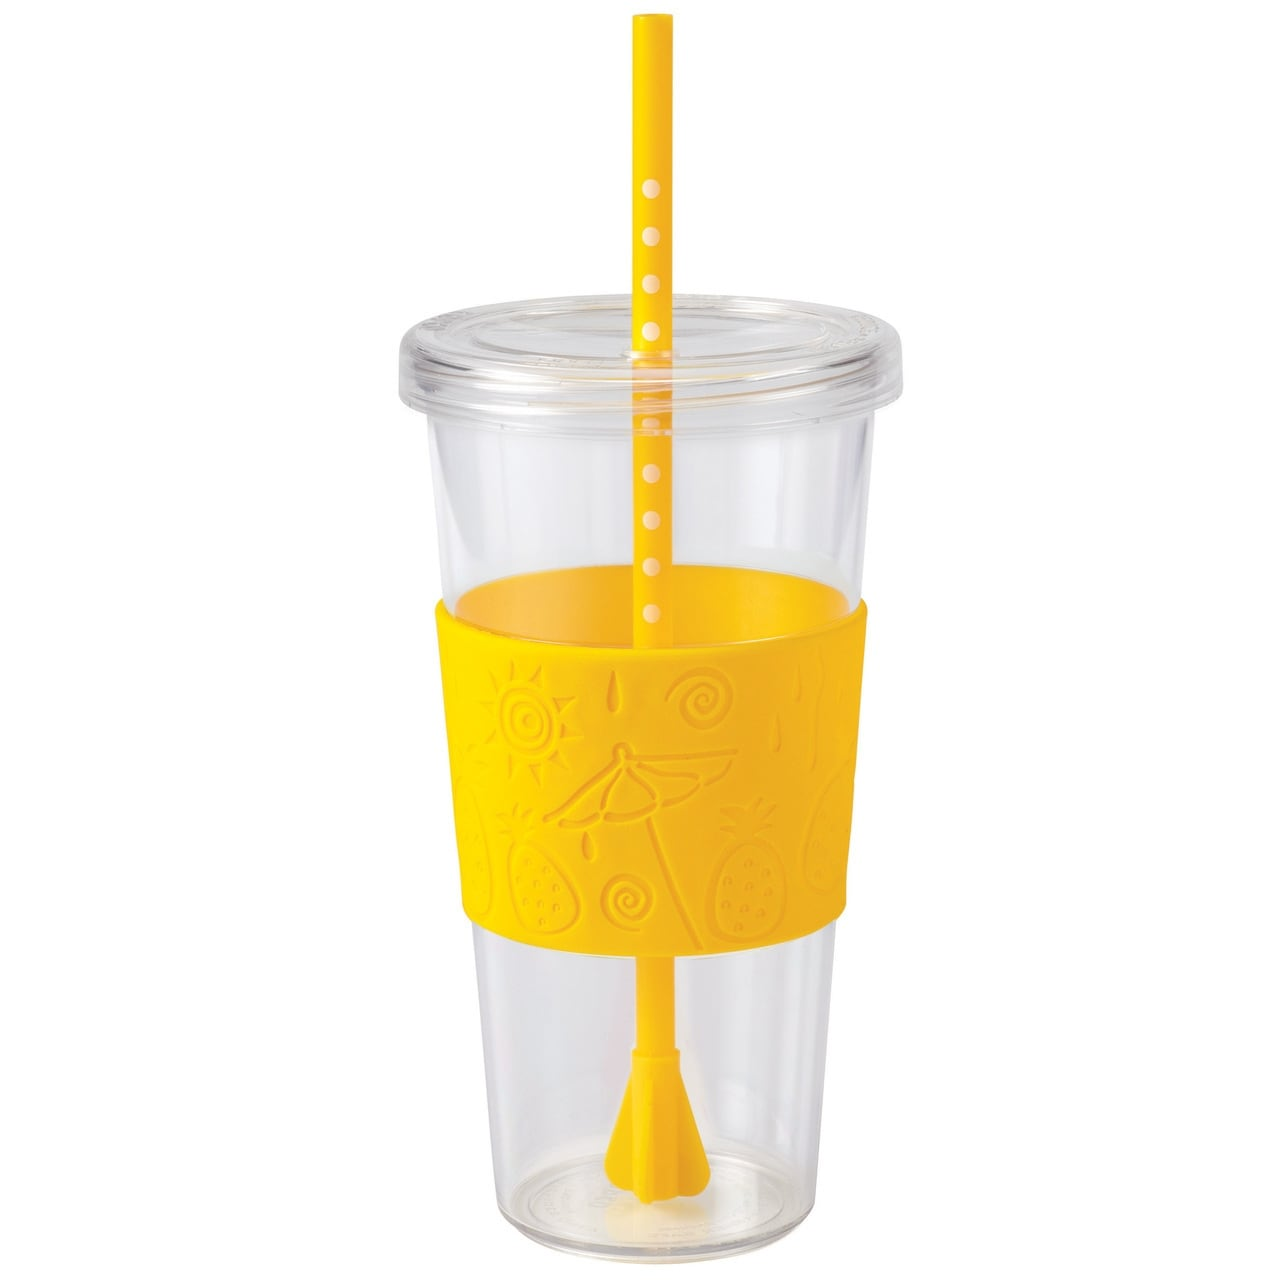 63cefa8efd3 Buy Plastic Tumblers Online at Overstock | Our Best Glasses ...